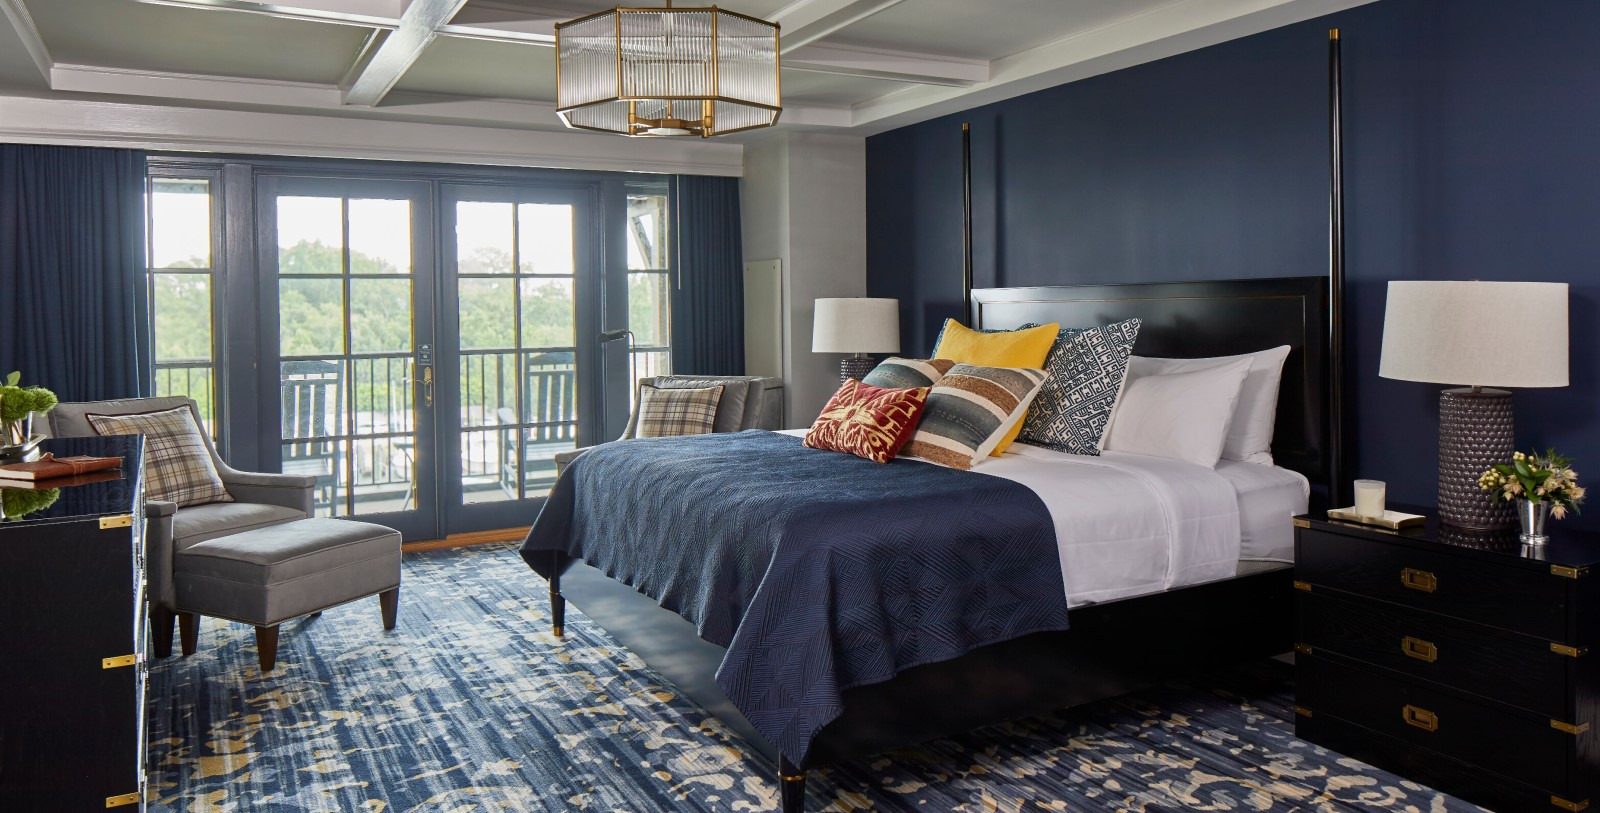 Image Of Presidential Suite Bedroom Grand Hotel Golf Resort & Spa In Point Clear, Alabama, Accommodations